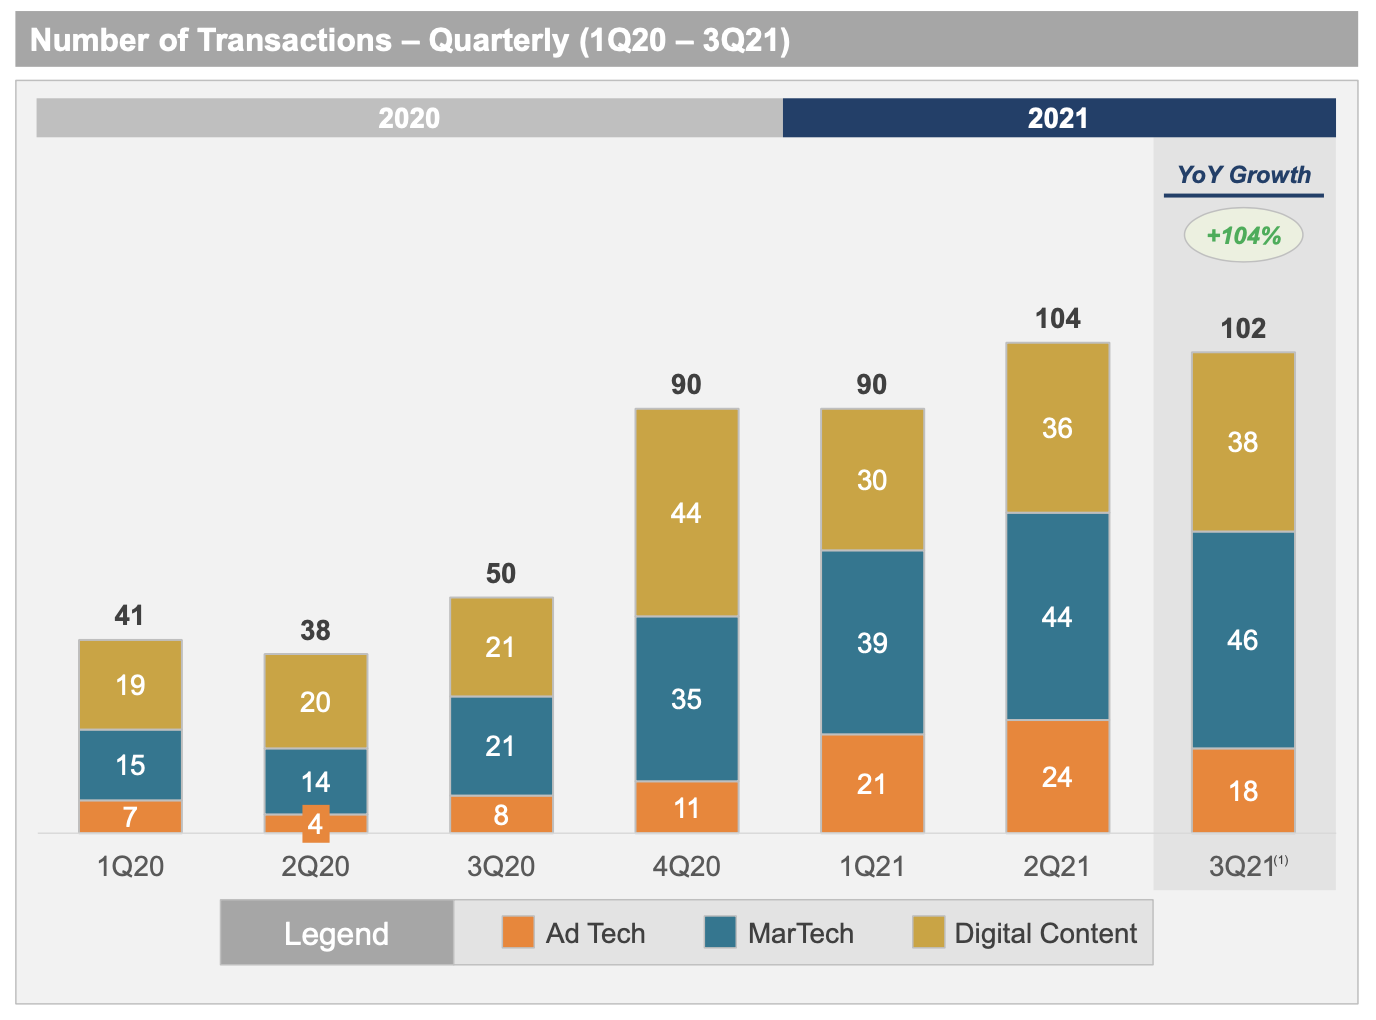 Martech M&A Activity Continues to Grow in Q3 2021